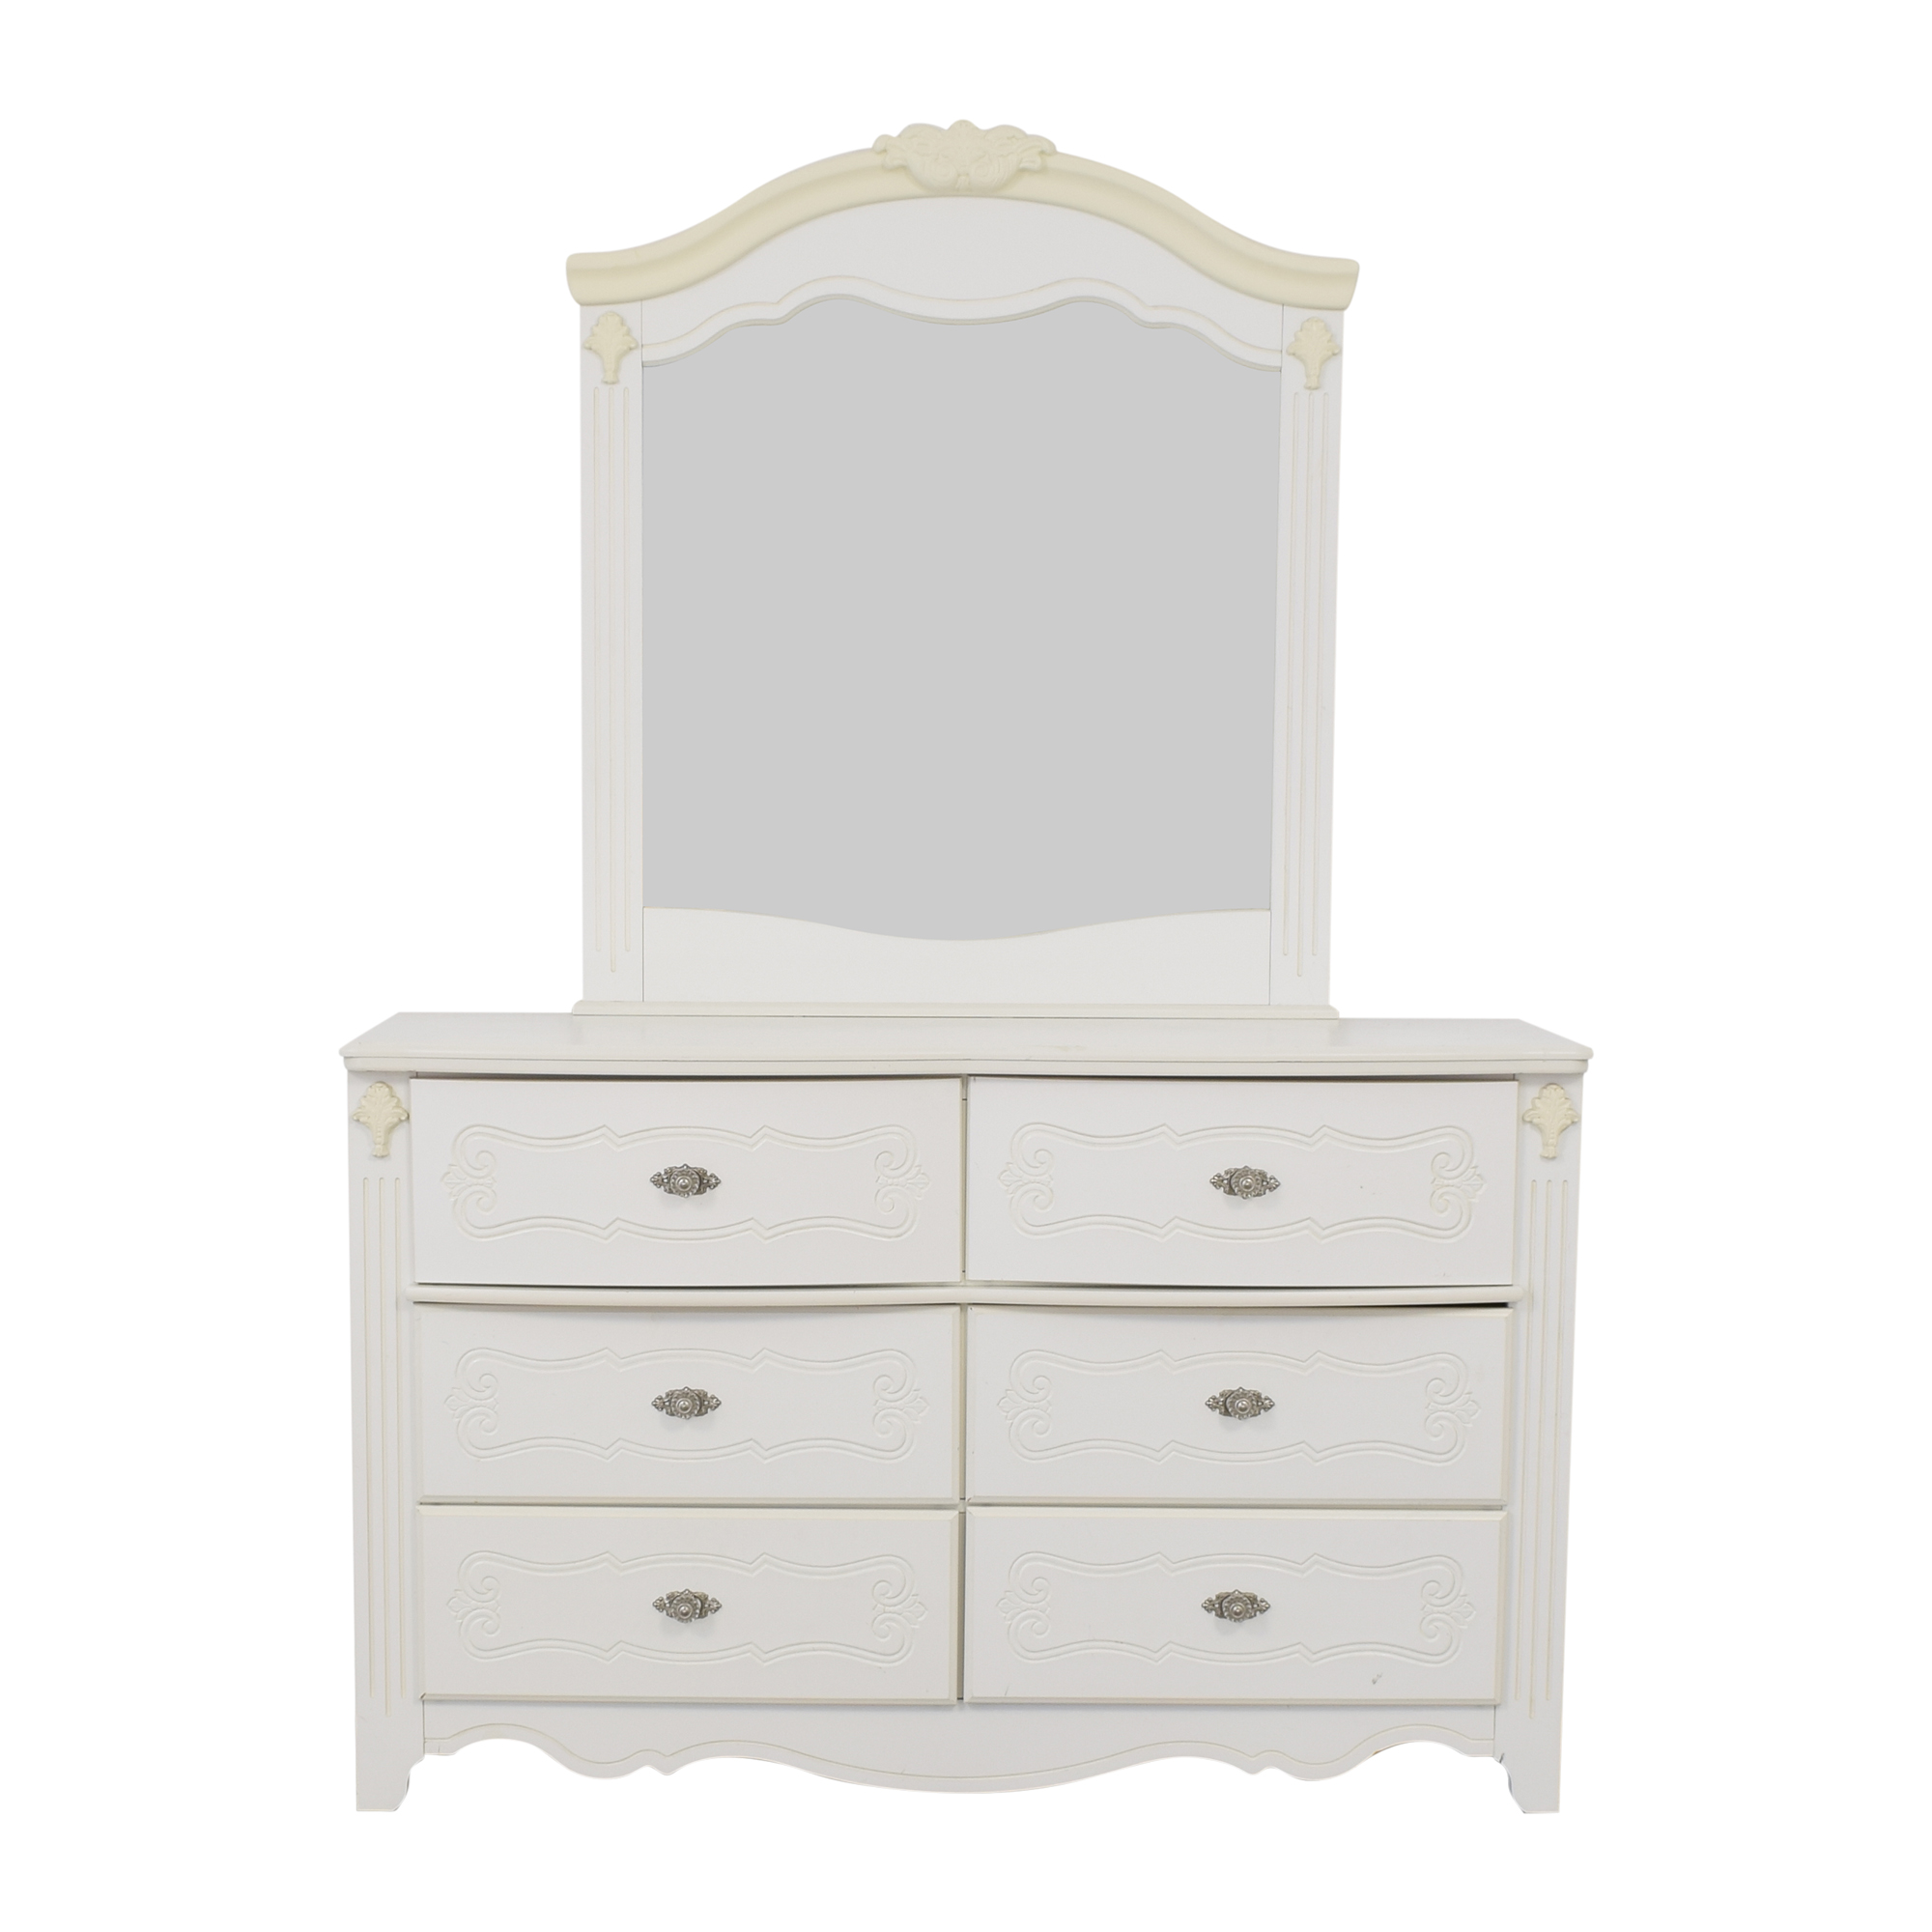 Ashley Furniture Ashley Furniture Dresser with Mirror discount